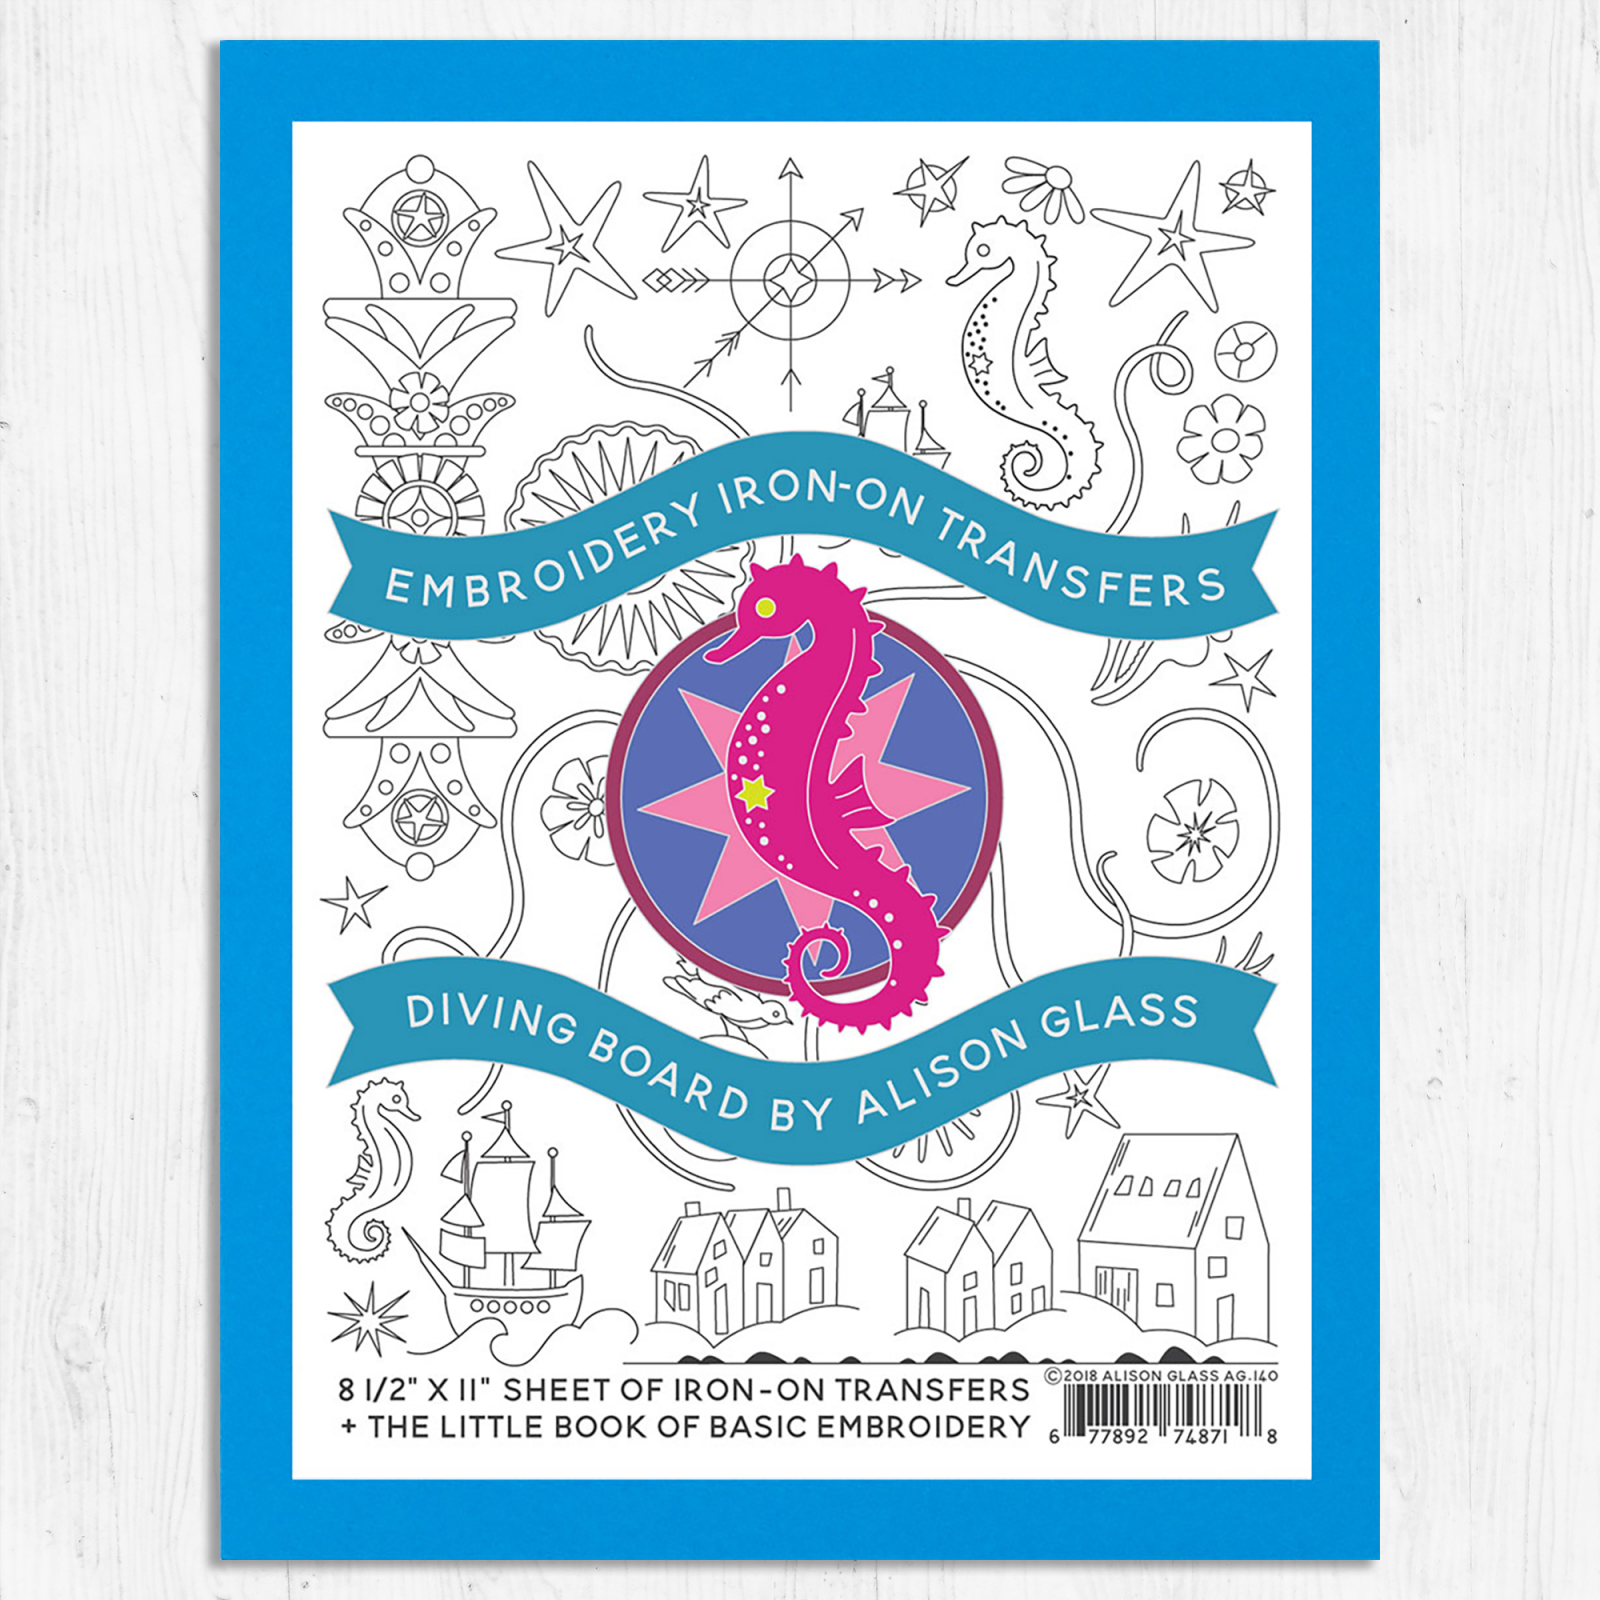 Embroidery Iron-On Transfers Diving Board